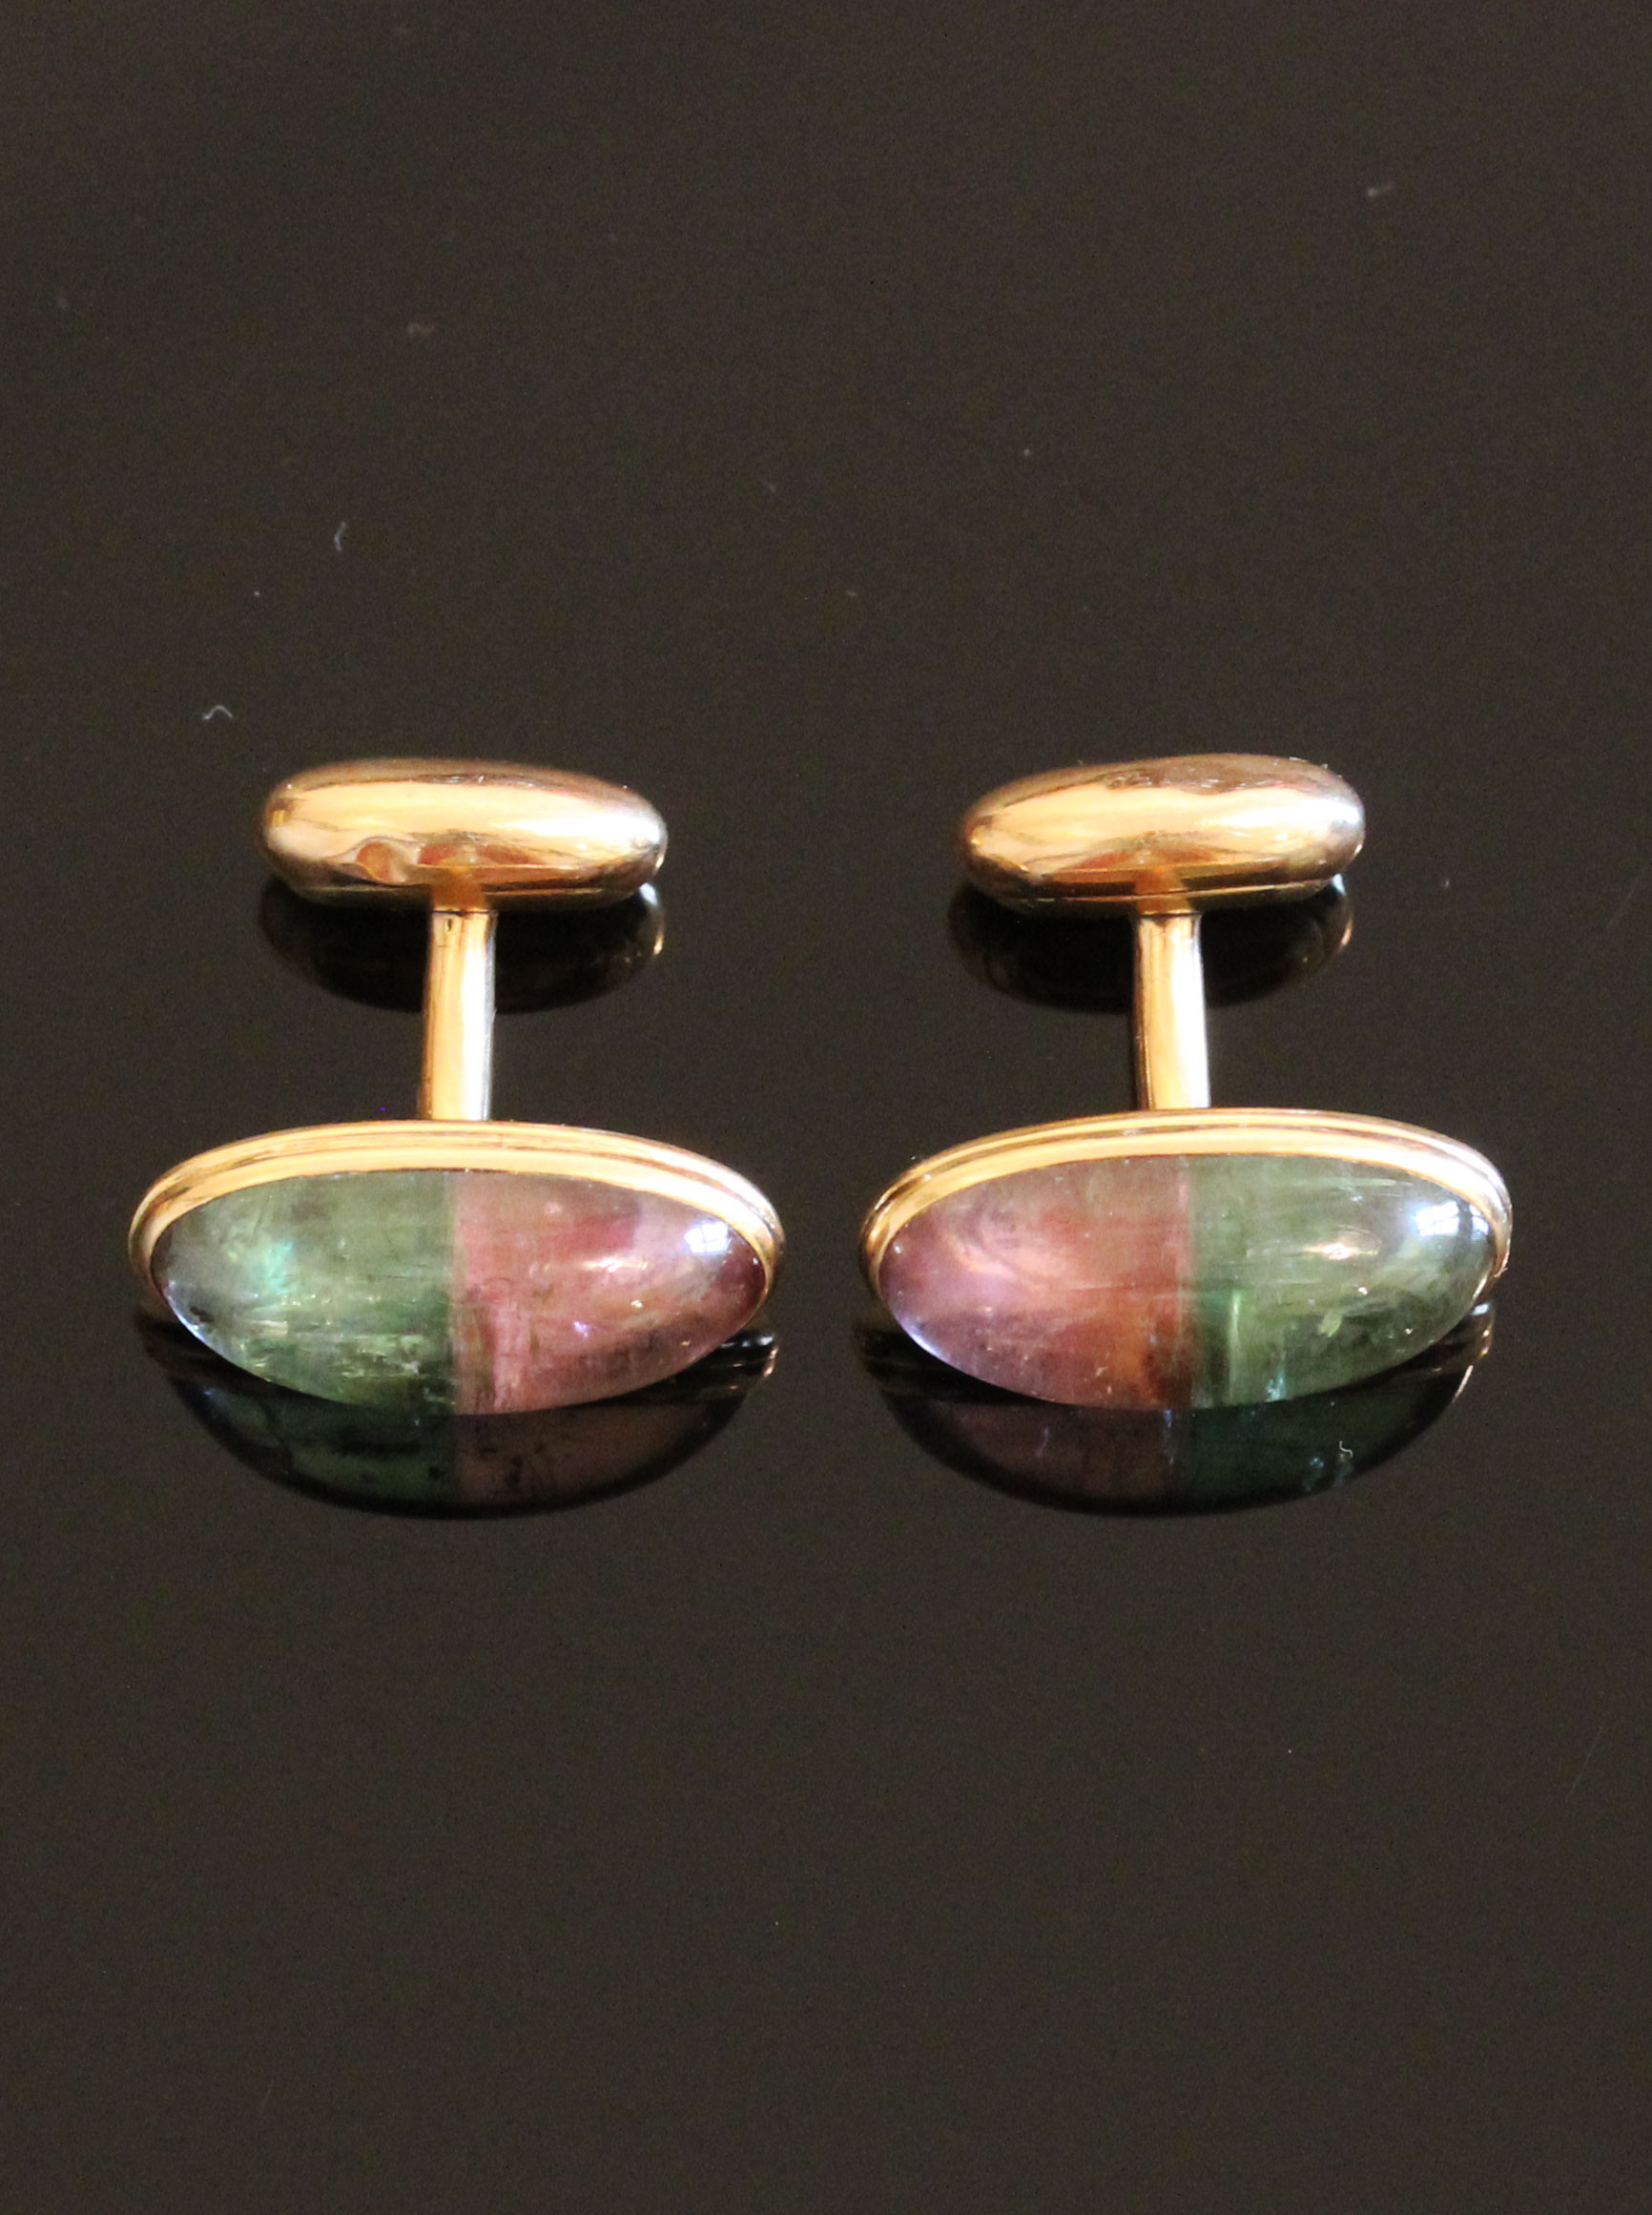 Rare gold cufflinks with a watermelon tourmaline